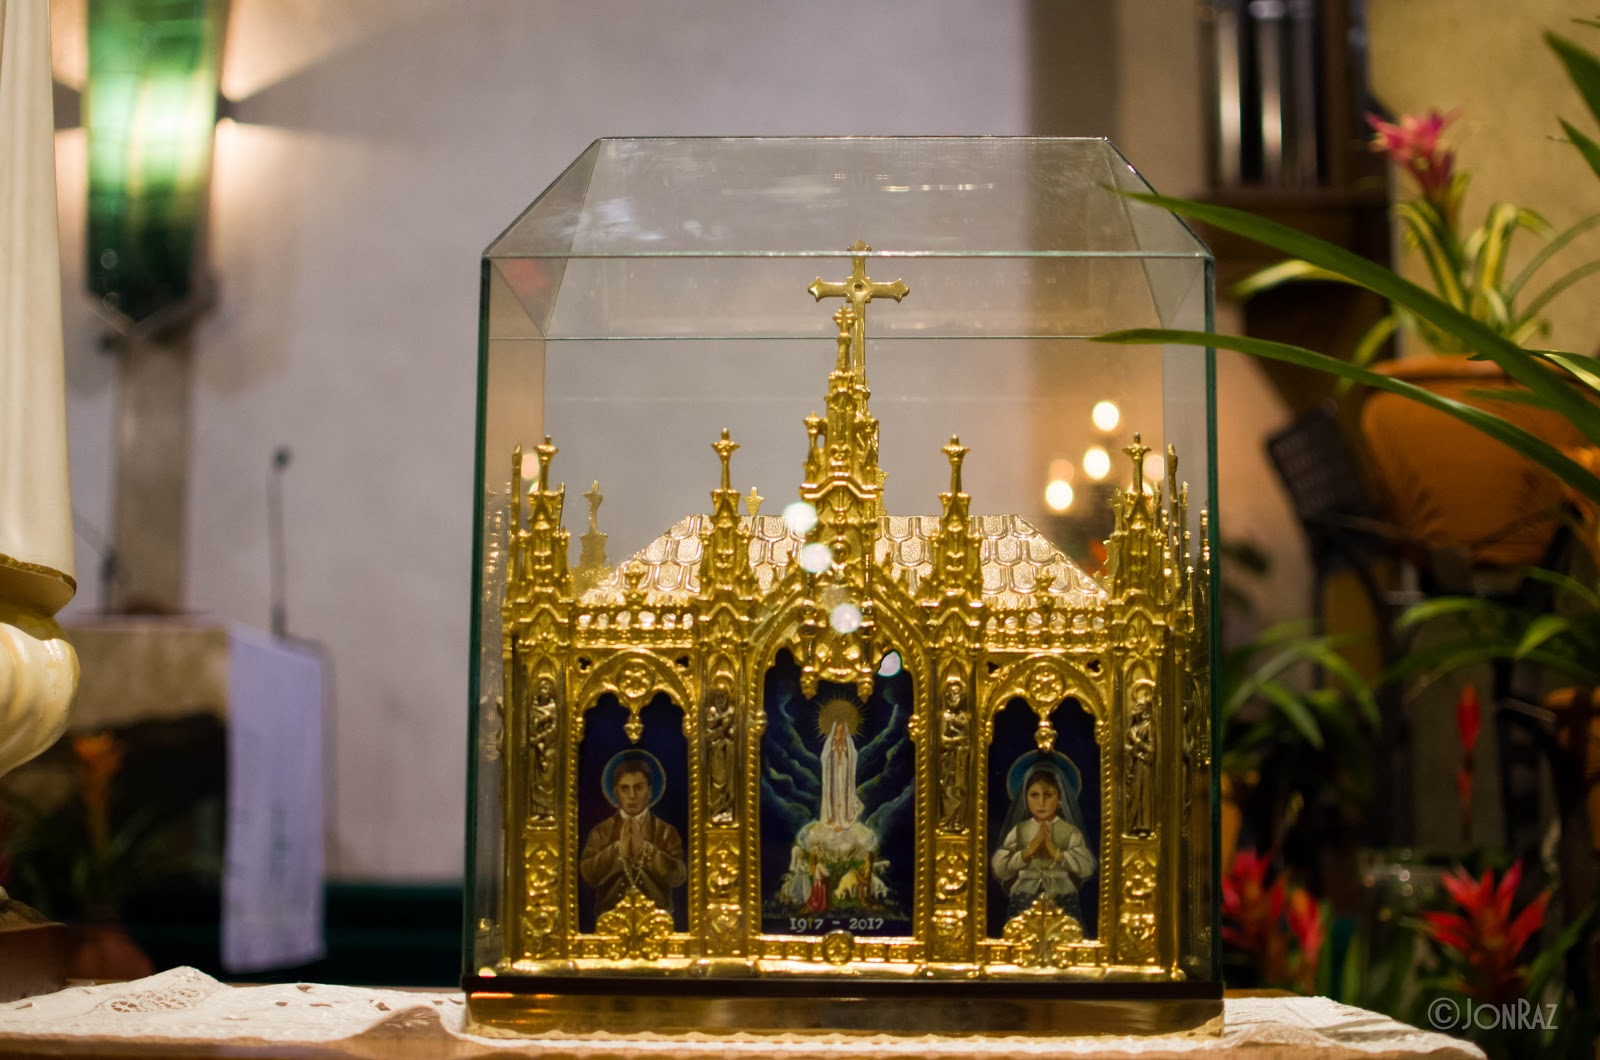 The Mission Image of the Our Lady of Fatima and the Relics of St. Jacinta and St. Francisco